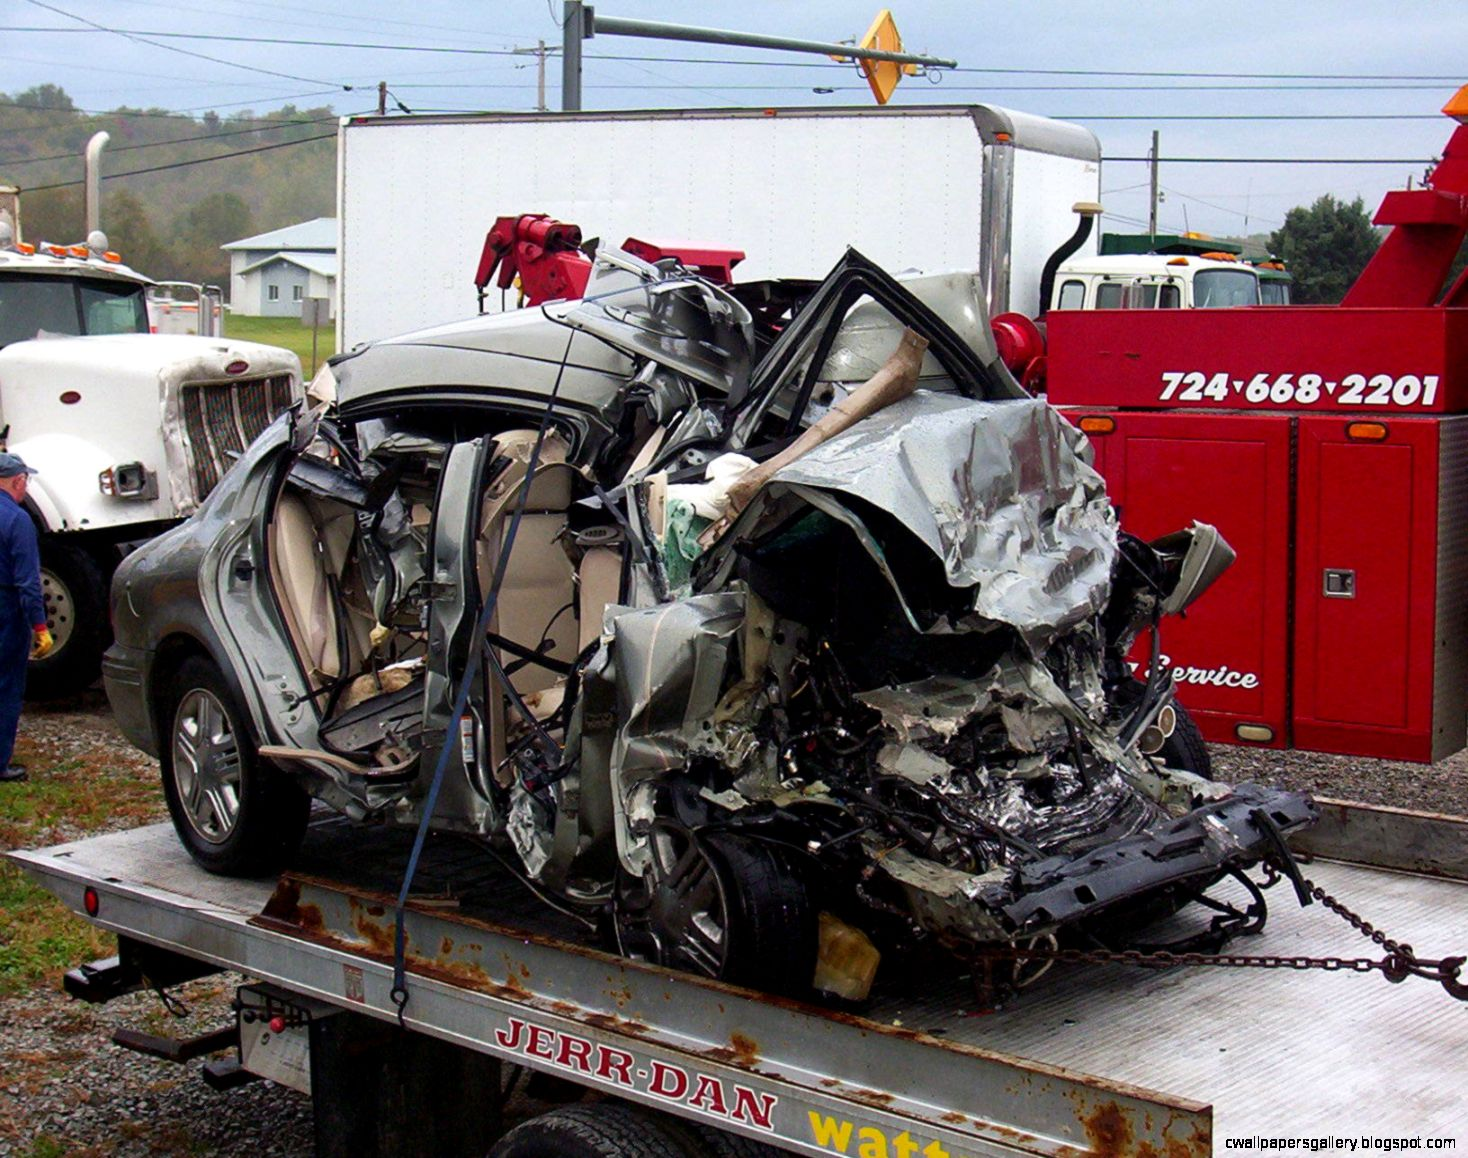 worst car accident i have ever Five of six teenagers crowded into a car died when the p-plate driver lost control and smashed into a tree at 140km/h, in a crash emergency workers said was the worst they had seen.